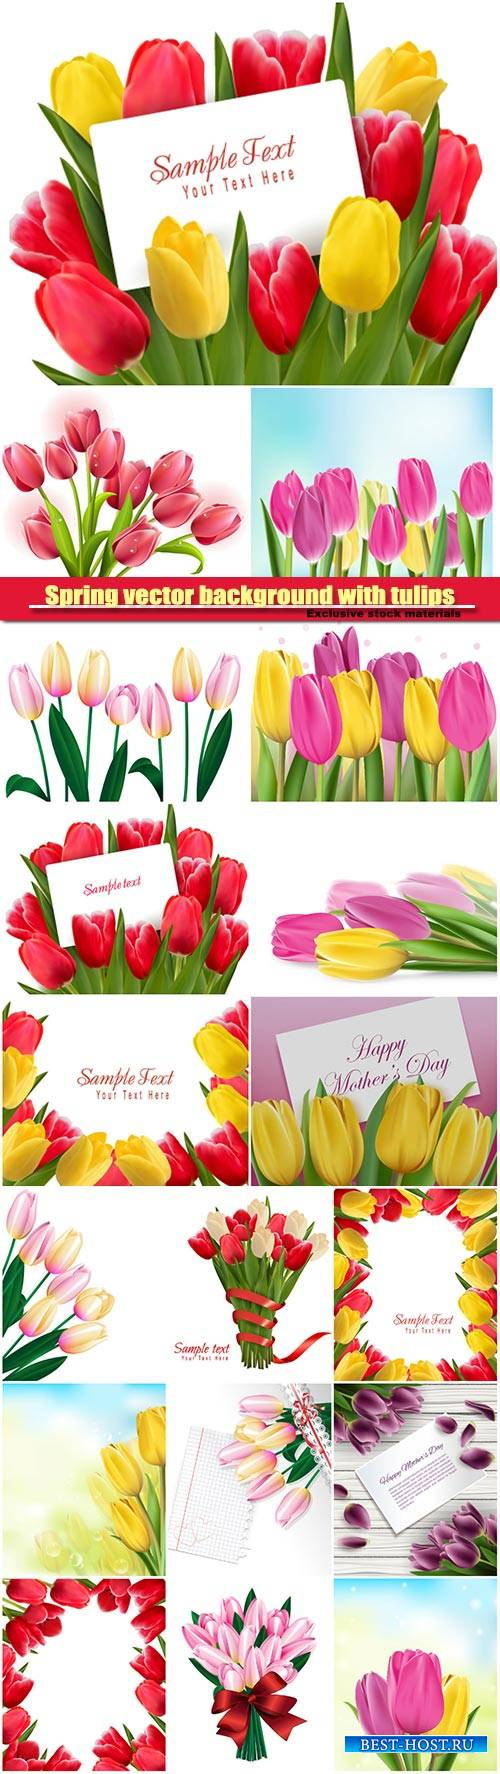 Spring vector background with tulips